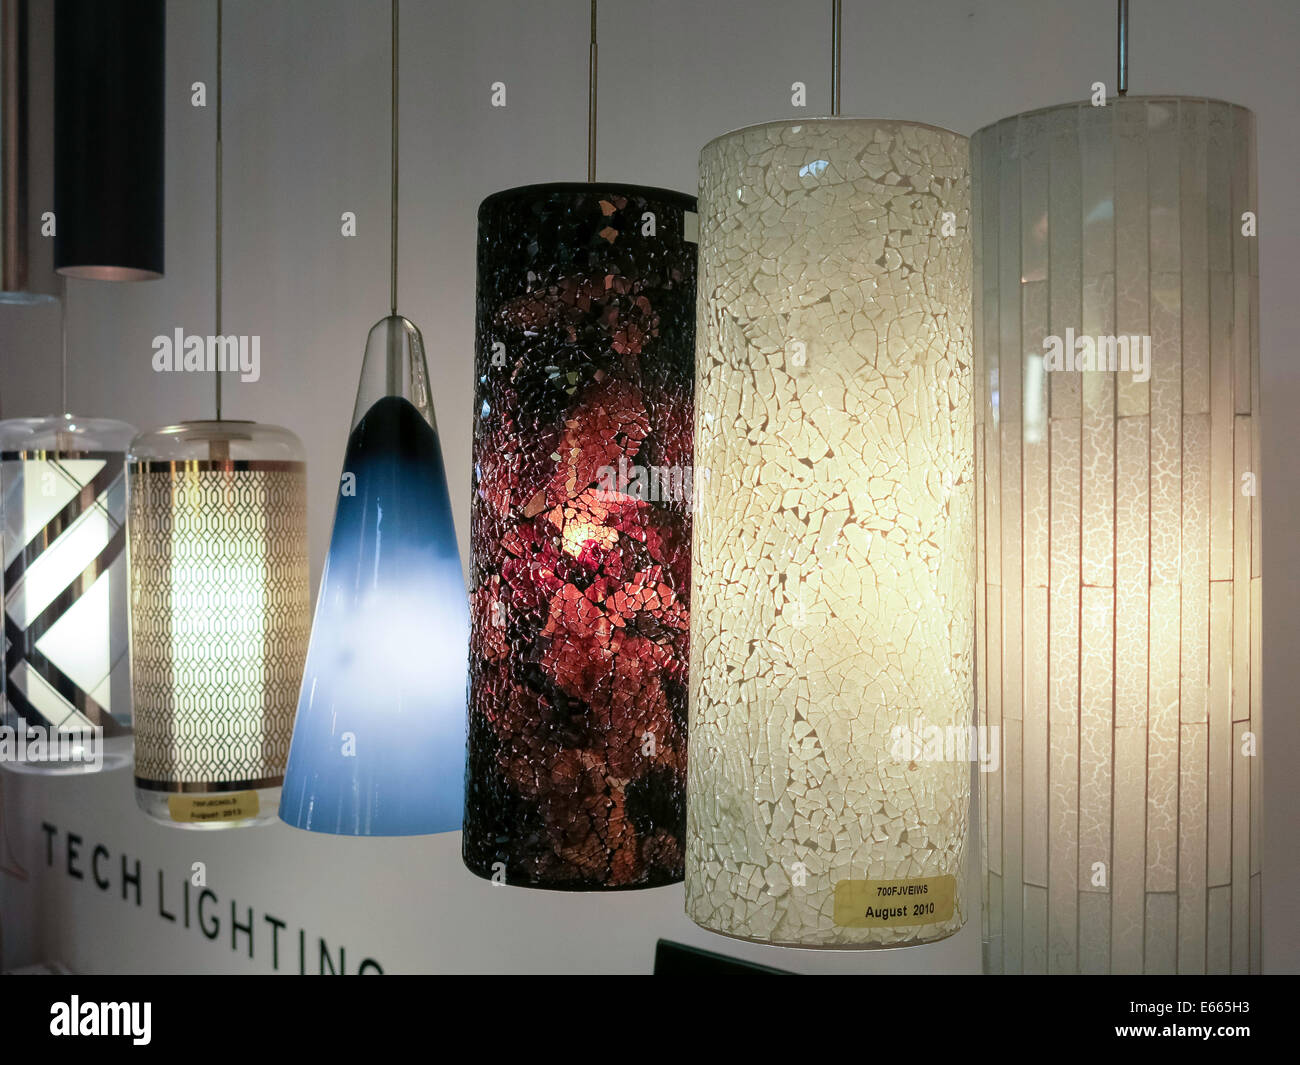 Lighting By Gregory Store Showroom In The Bowery, NYC, USA Ideas